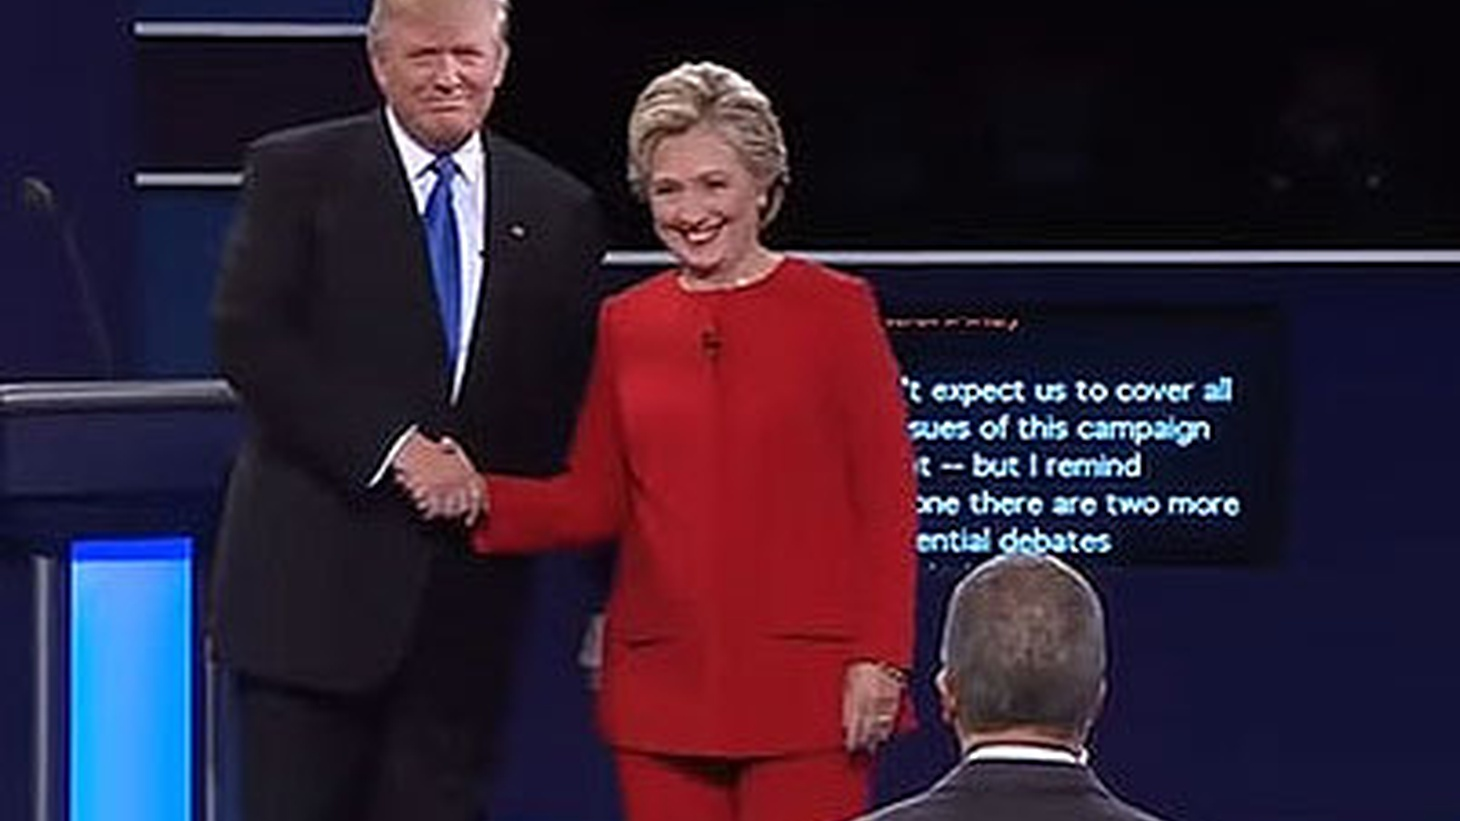 """More than 80 million people watched the first debate between Hillary Clinton and Donald Trump, making it the most-watched debate ever. The candidates squabbled over the birther conspiracy, the TPP, race and crime, and who has the more """"winning temperament."""""""